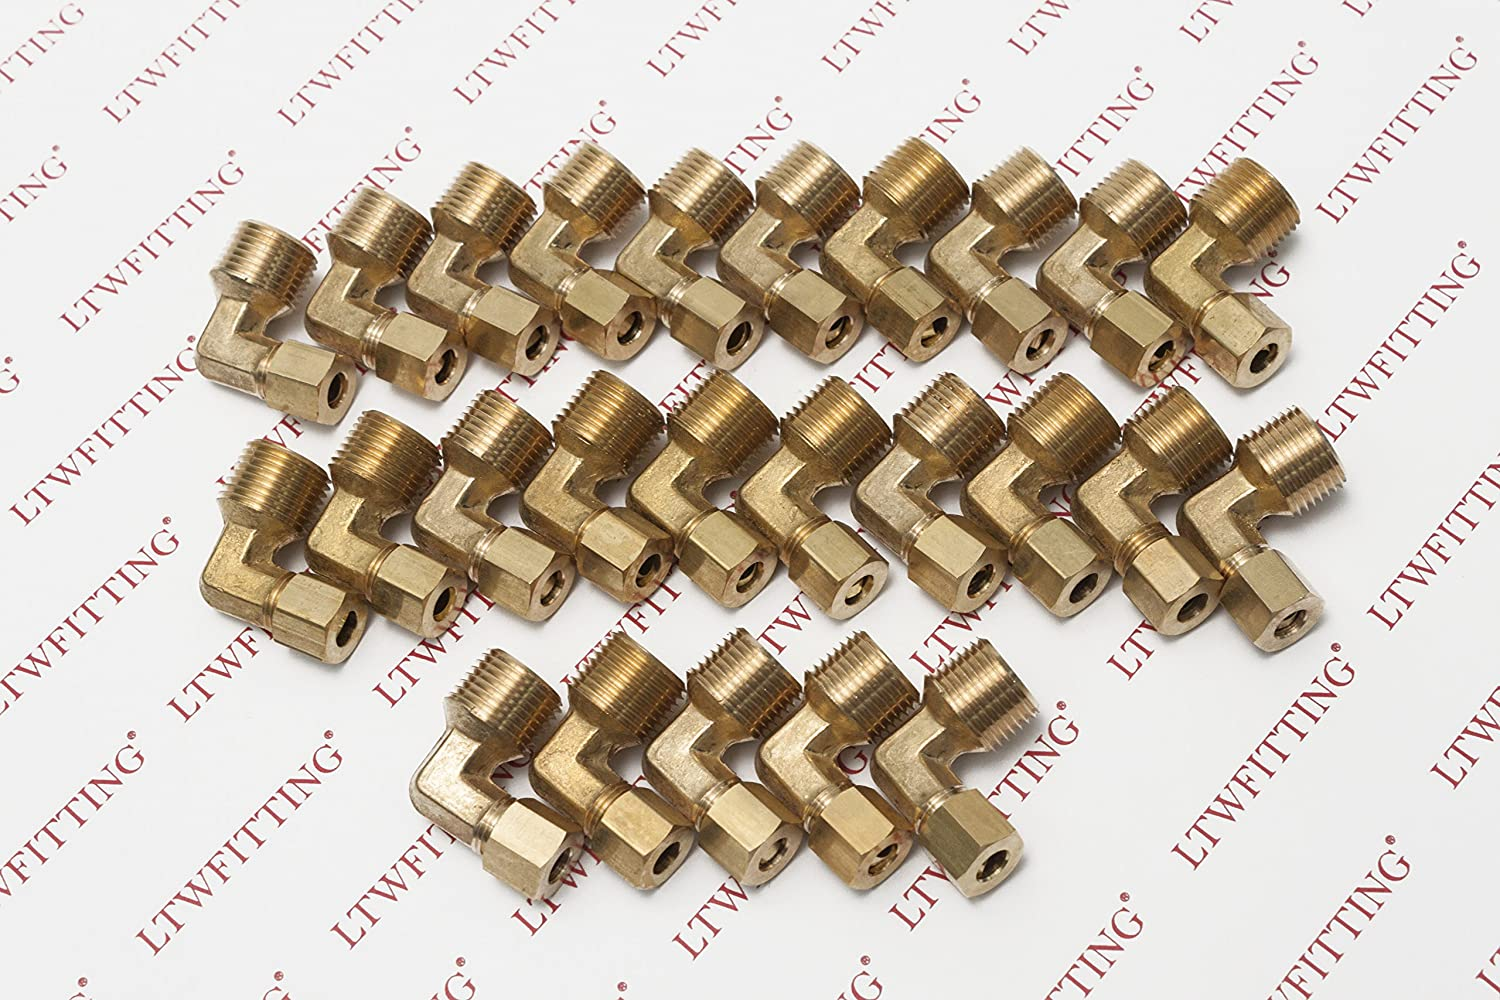 LTWFITTING 3//16-Inch OD x 1//8-Inch Male NPT 90 Degree Compression Elbow,Brass Compression Fitting Pack of 300